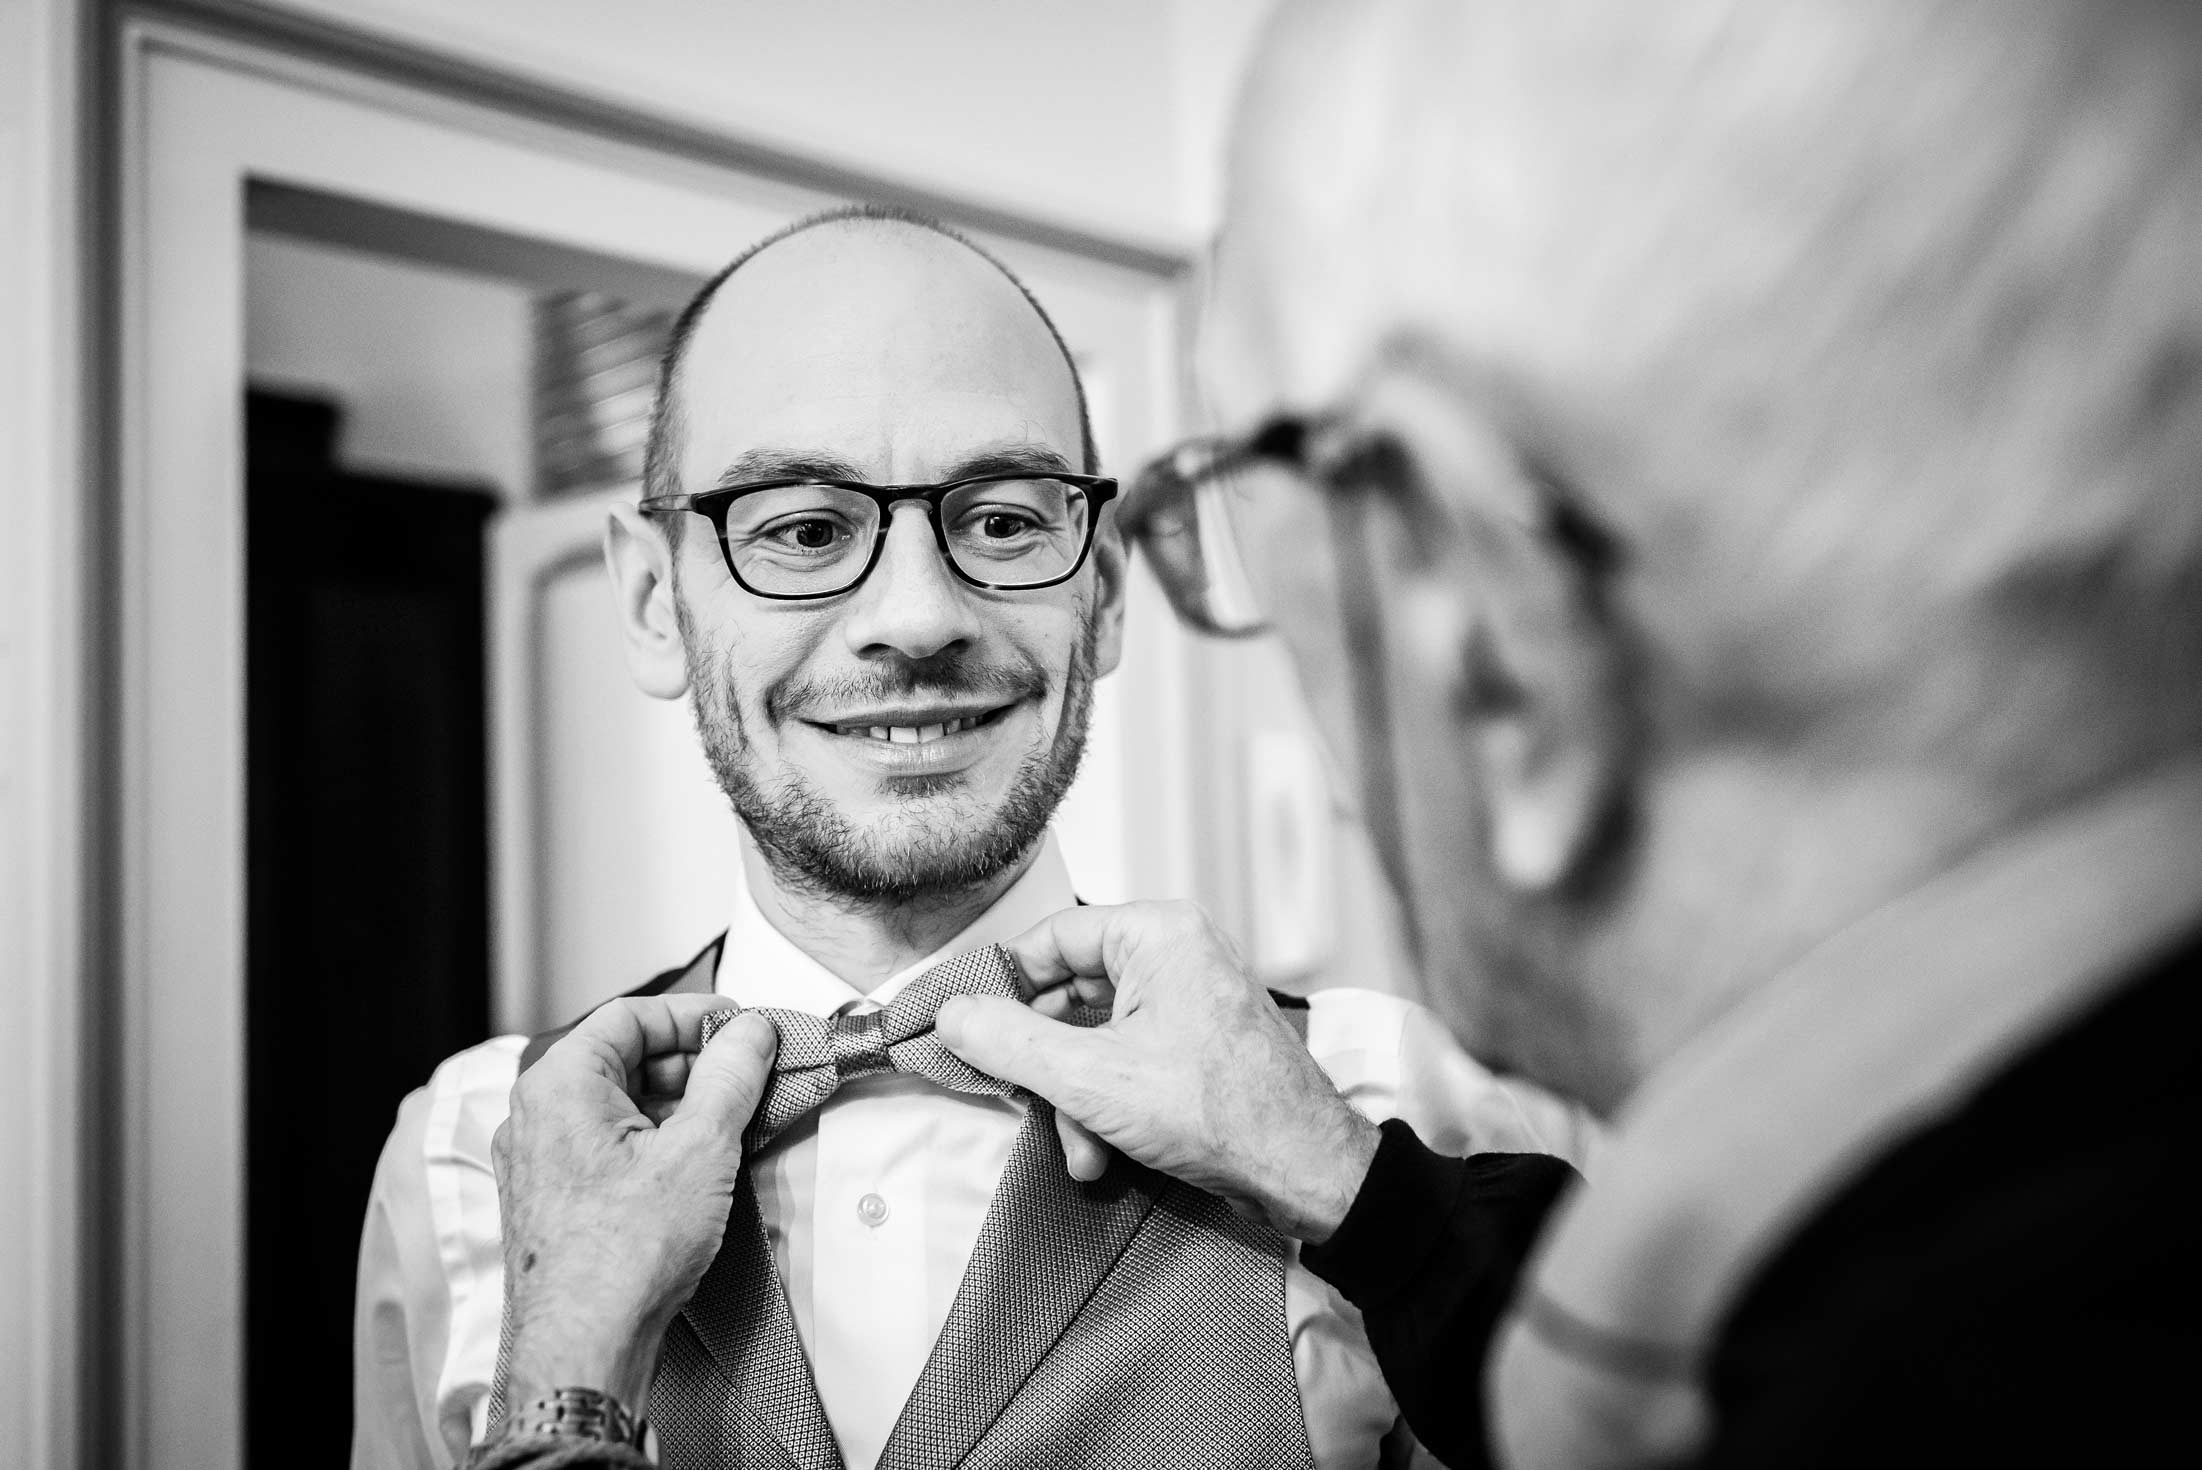 Reportage-Wedding-Photographer-in-Italy-Rome-Groom